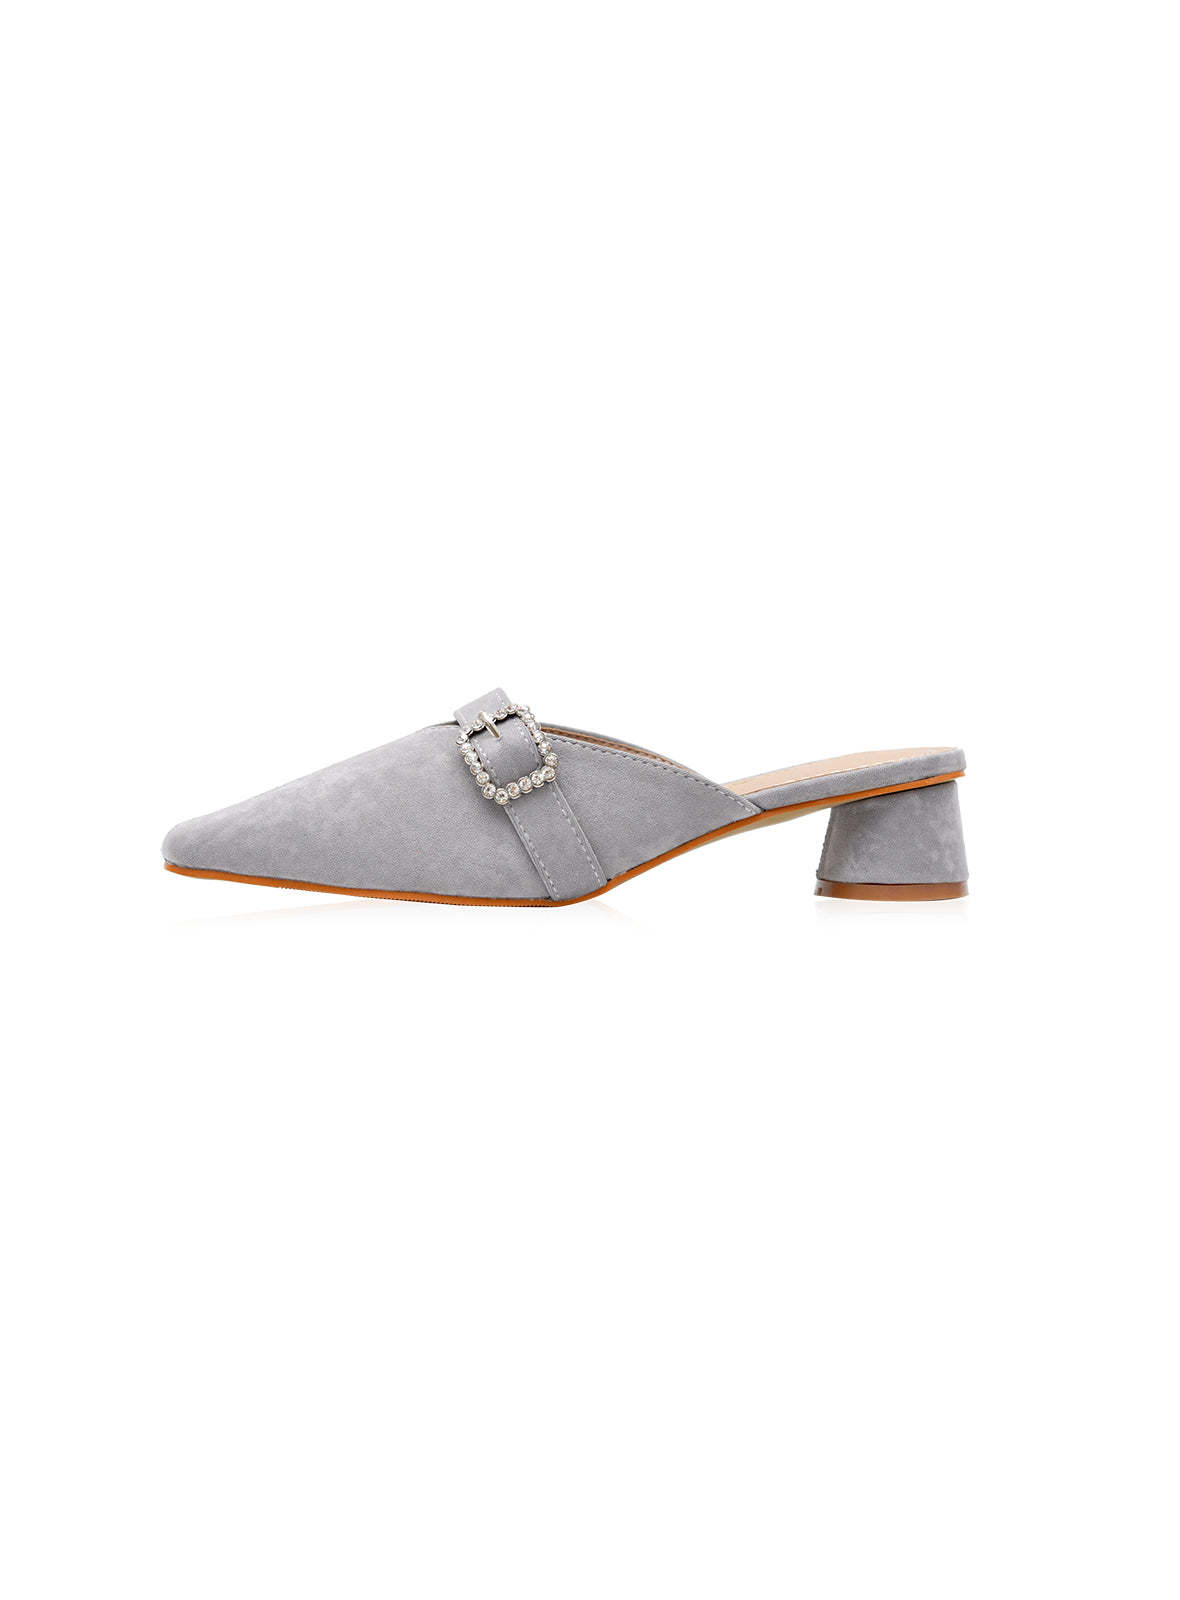 Emery Heels in Grey